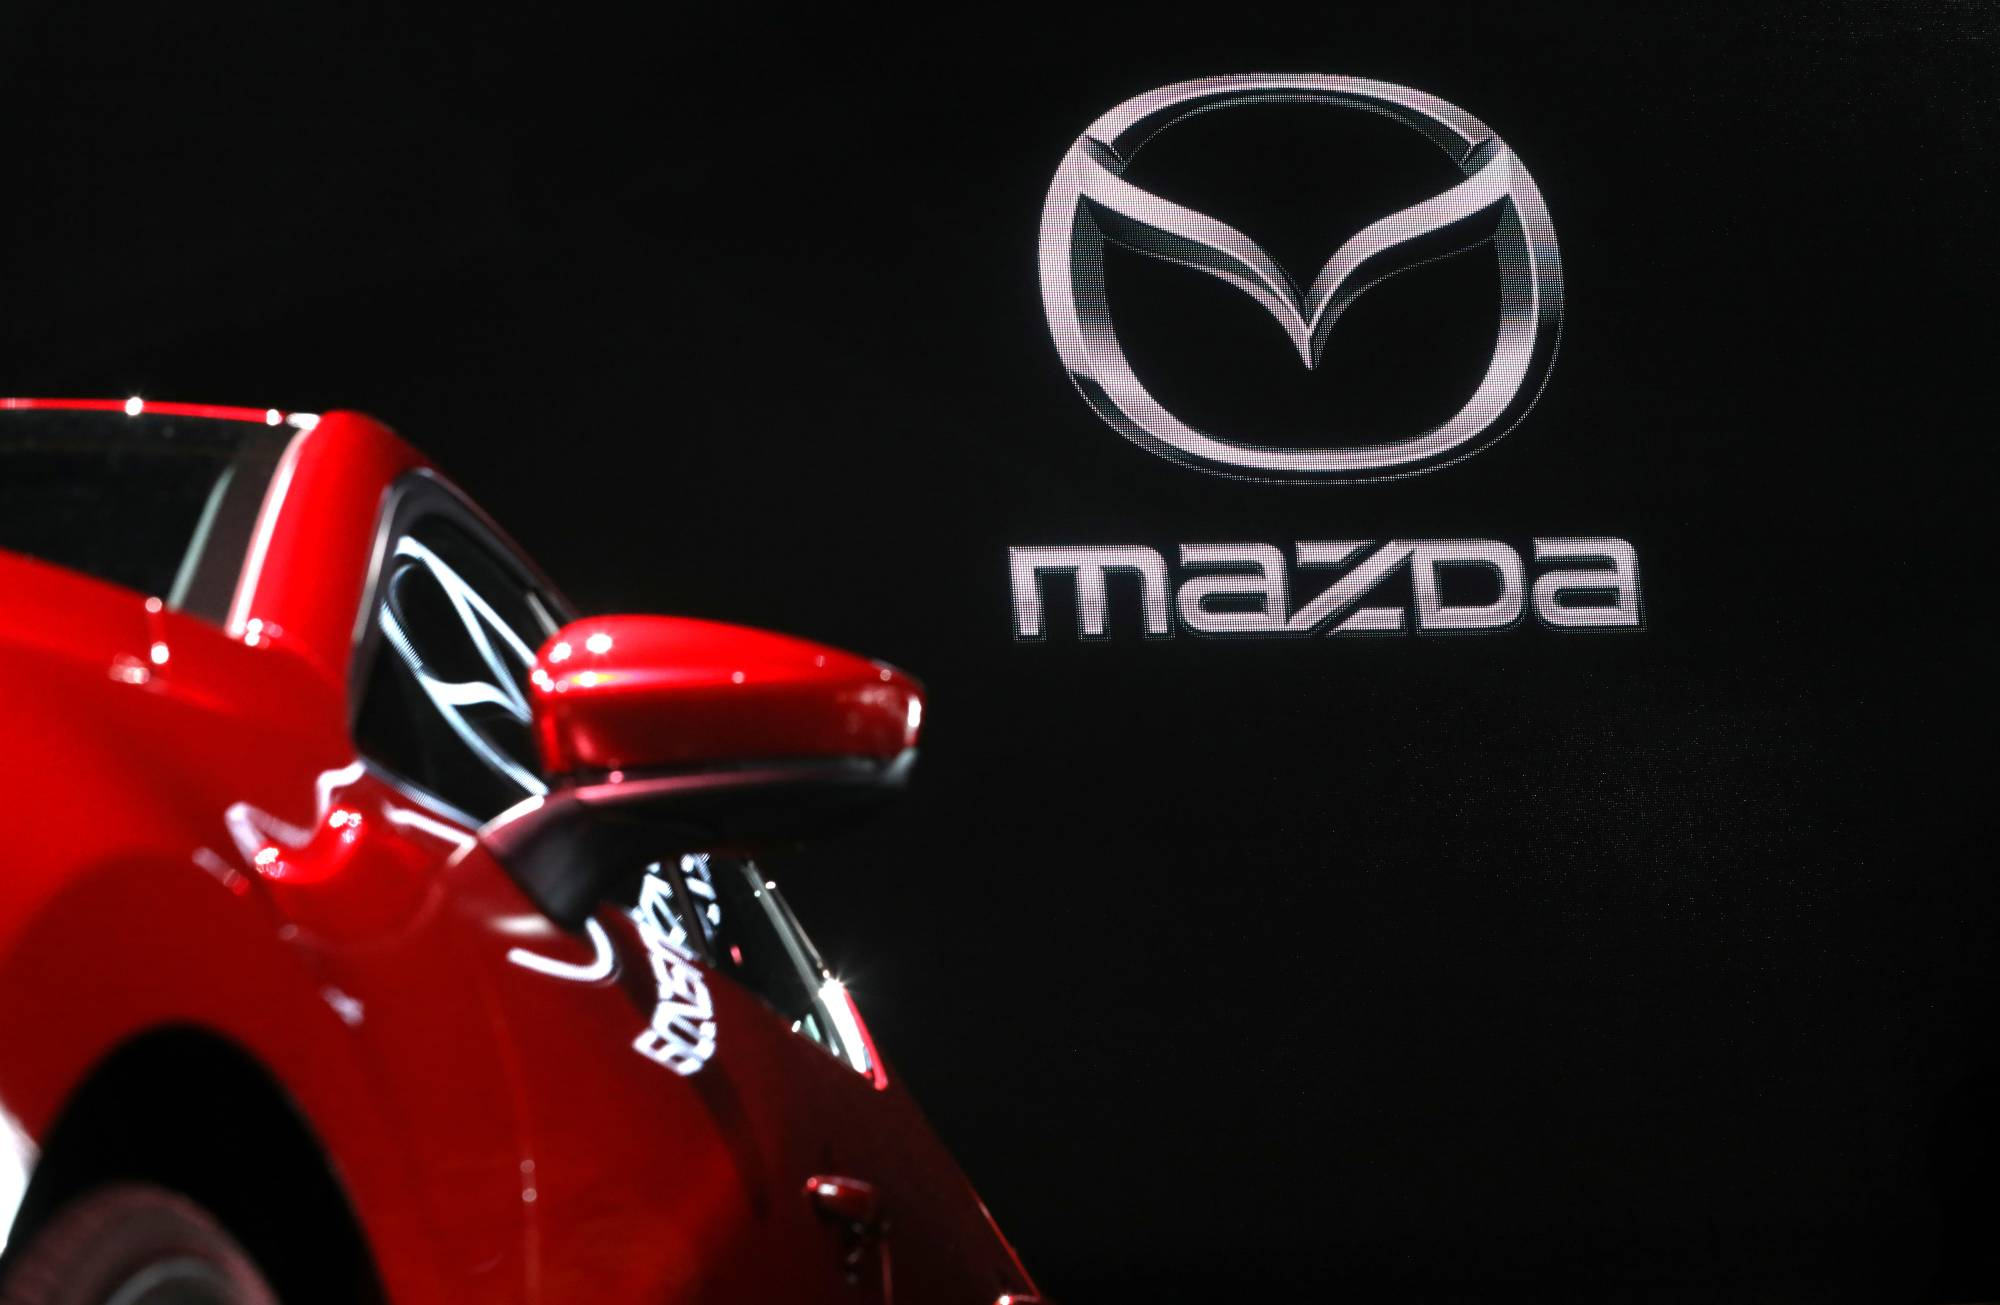 Starting in 2025, Mazda will shift its focus to developing electric vehicles using a dedicated platform now under development. | REUTERS